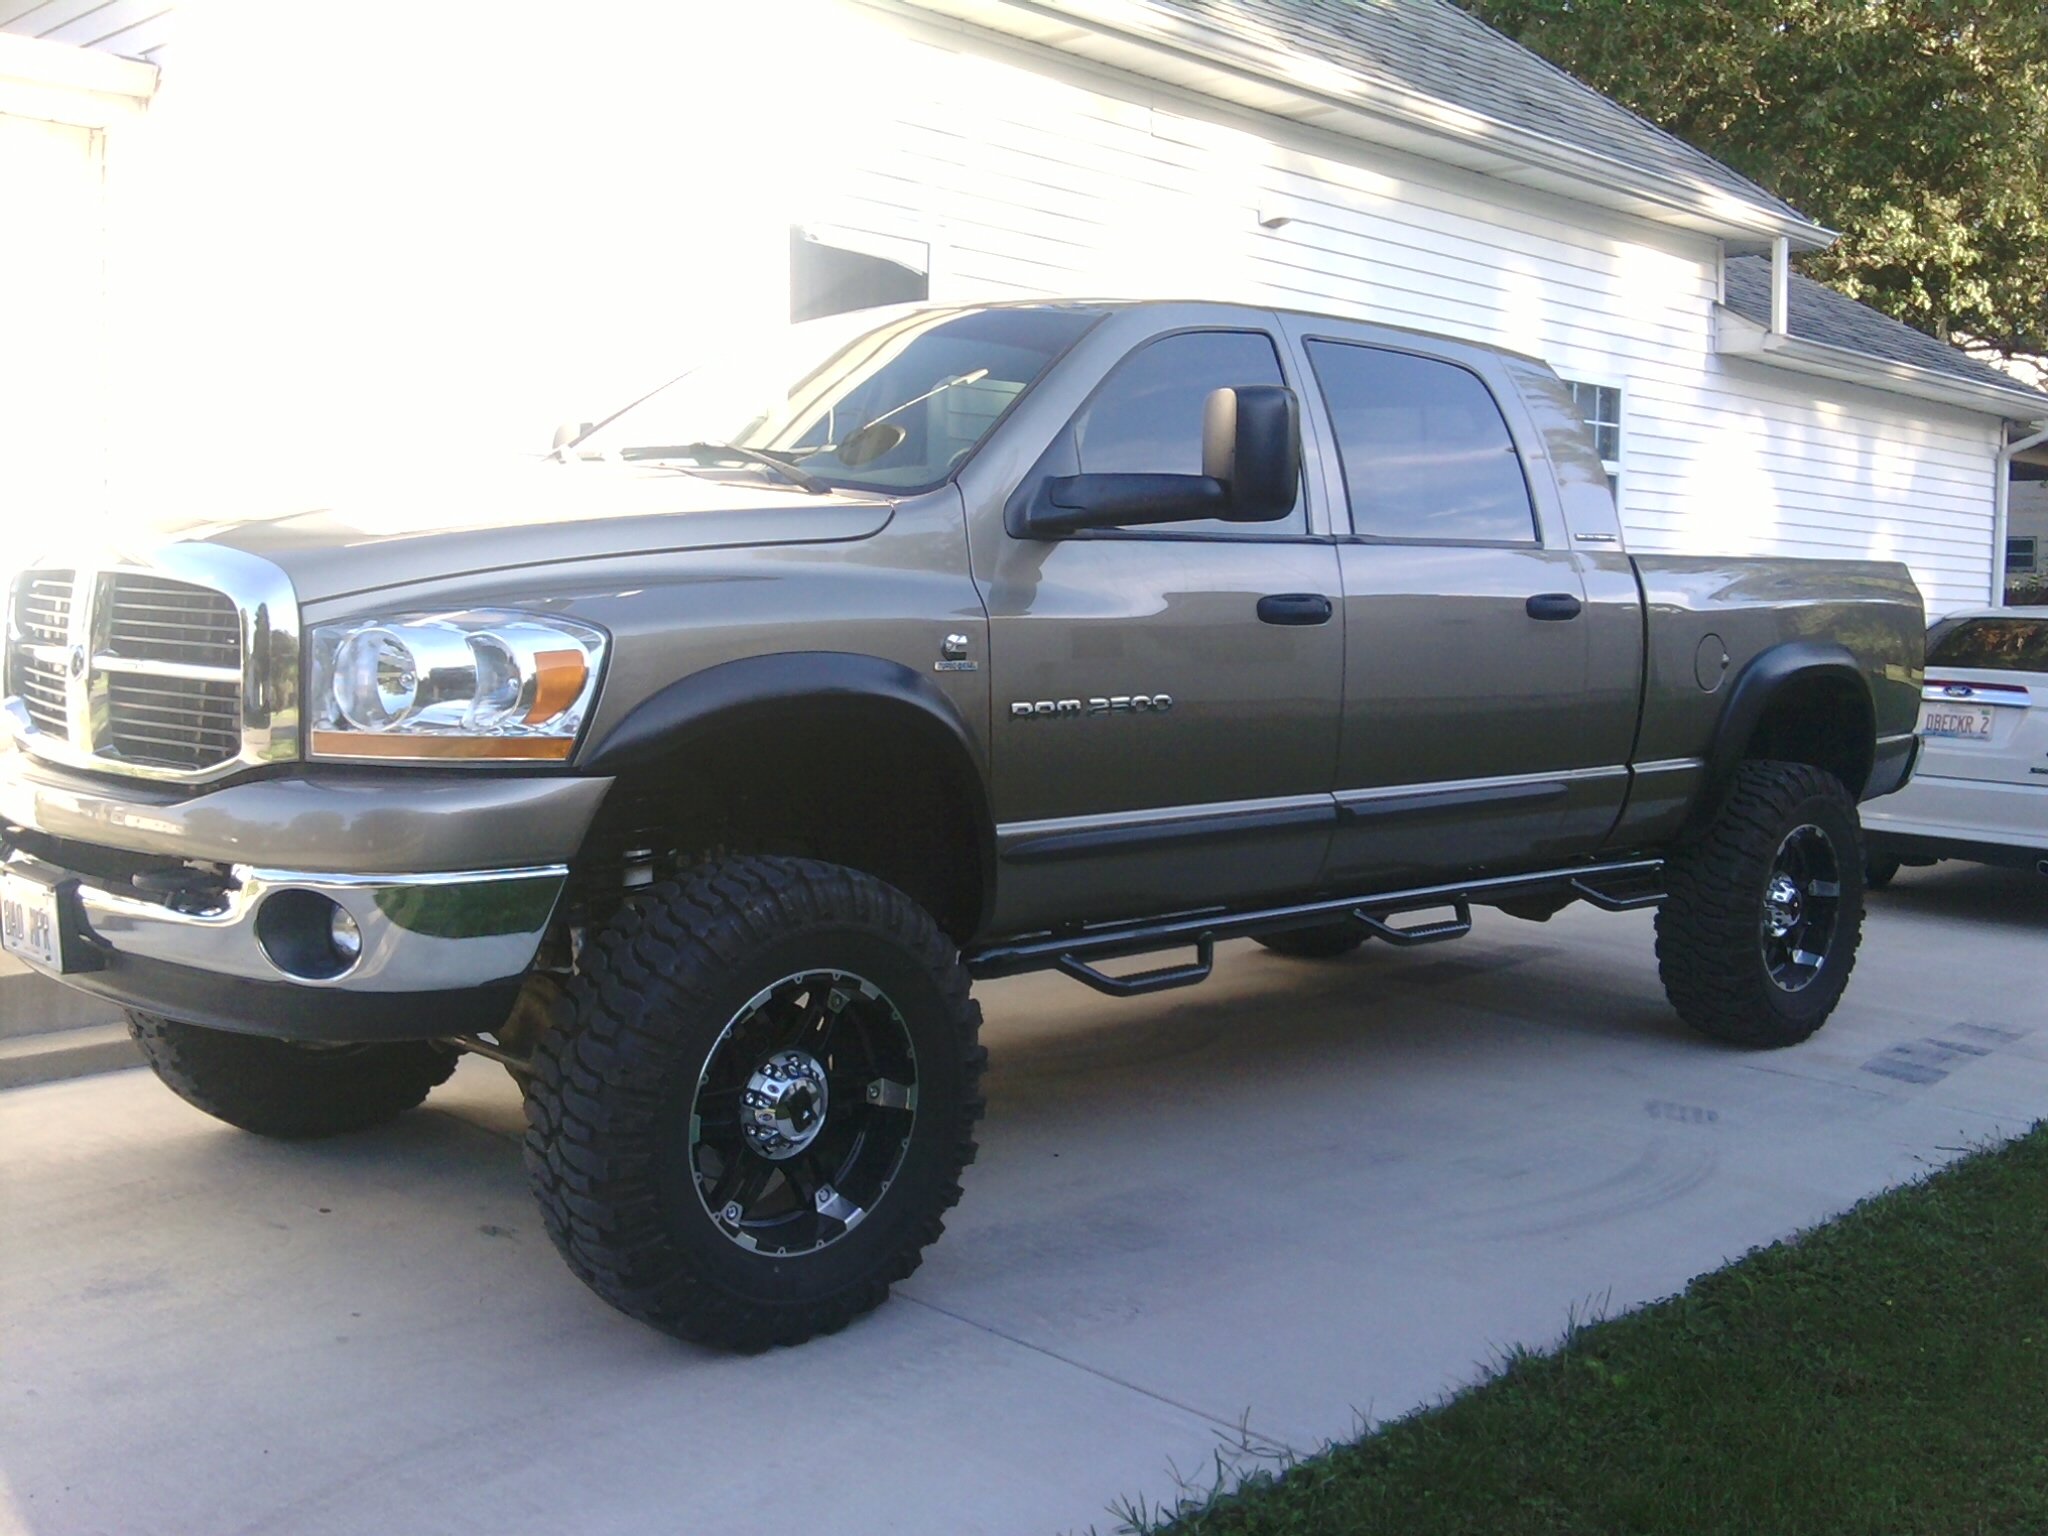 Badmpr1 2006 Dodge Ram 2500 Mega Cabslt Pickup 4d 6 1 4 Ft Specs Photos Modification Info At Cardomain